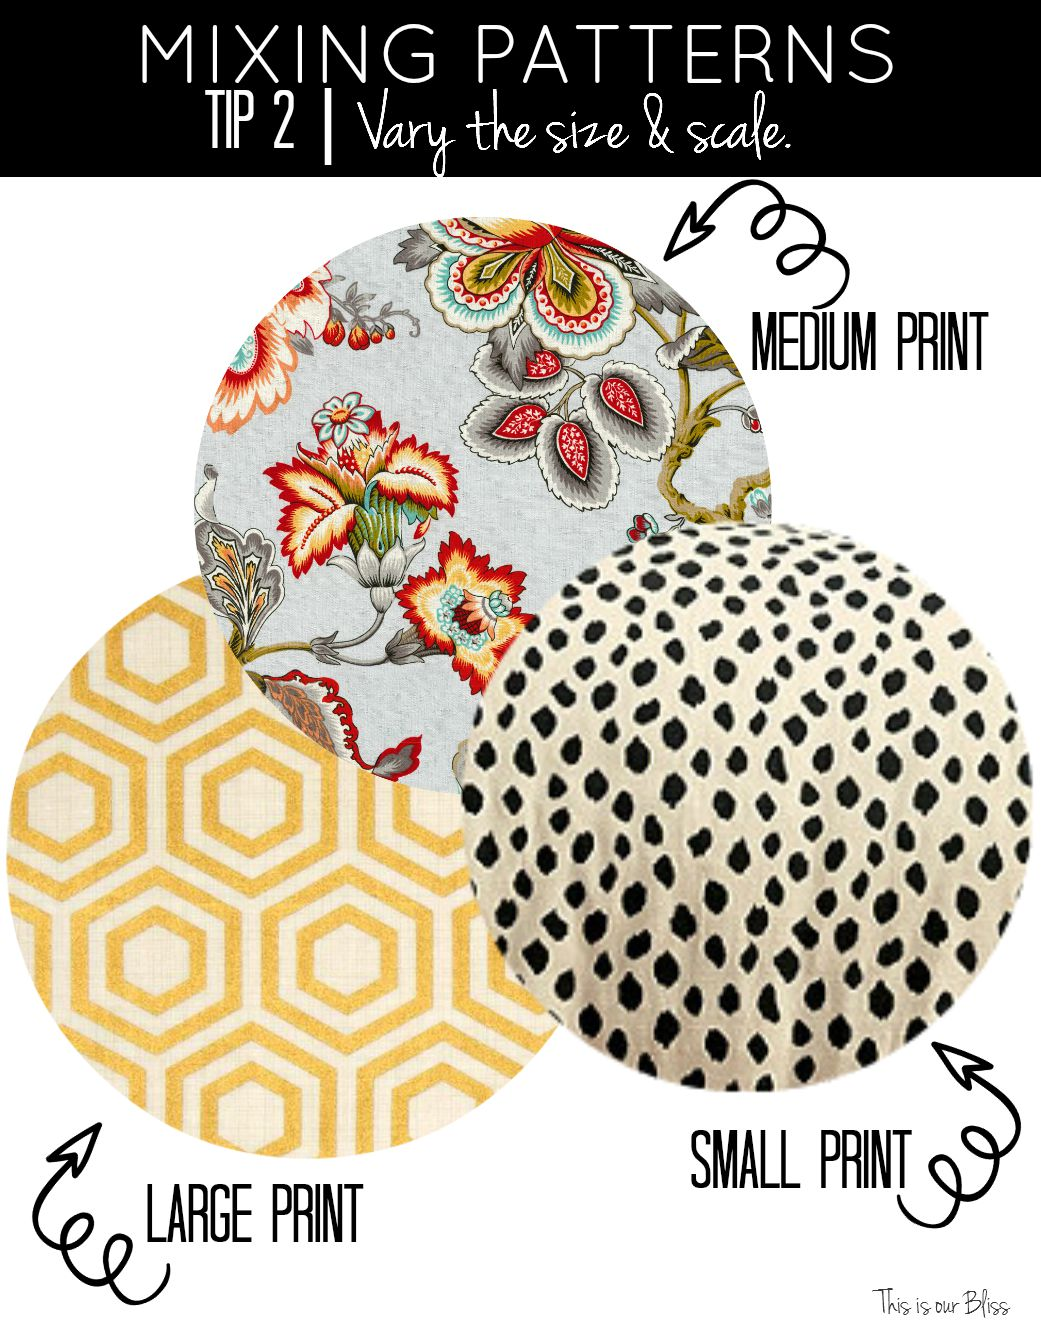 How To Mix Patterns Back To Basics Week 2 This Is Our